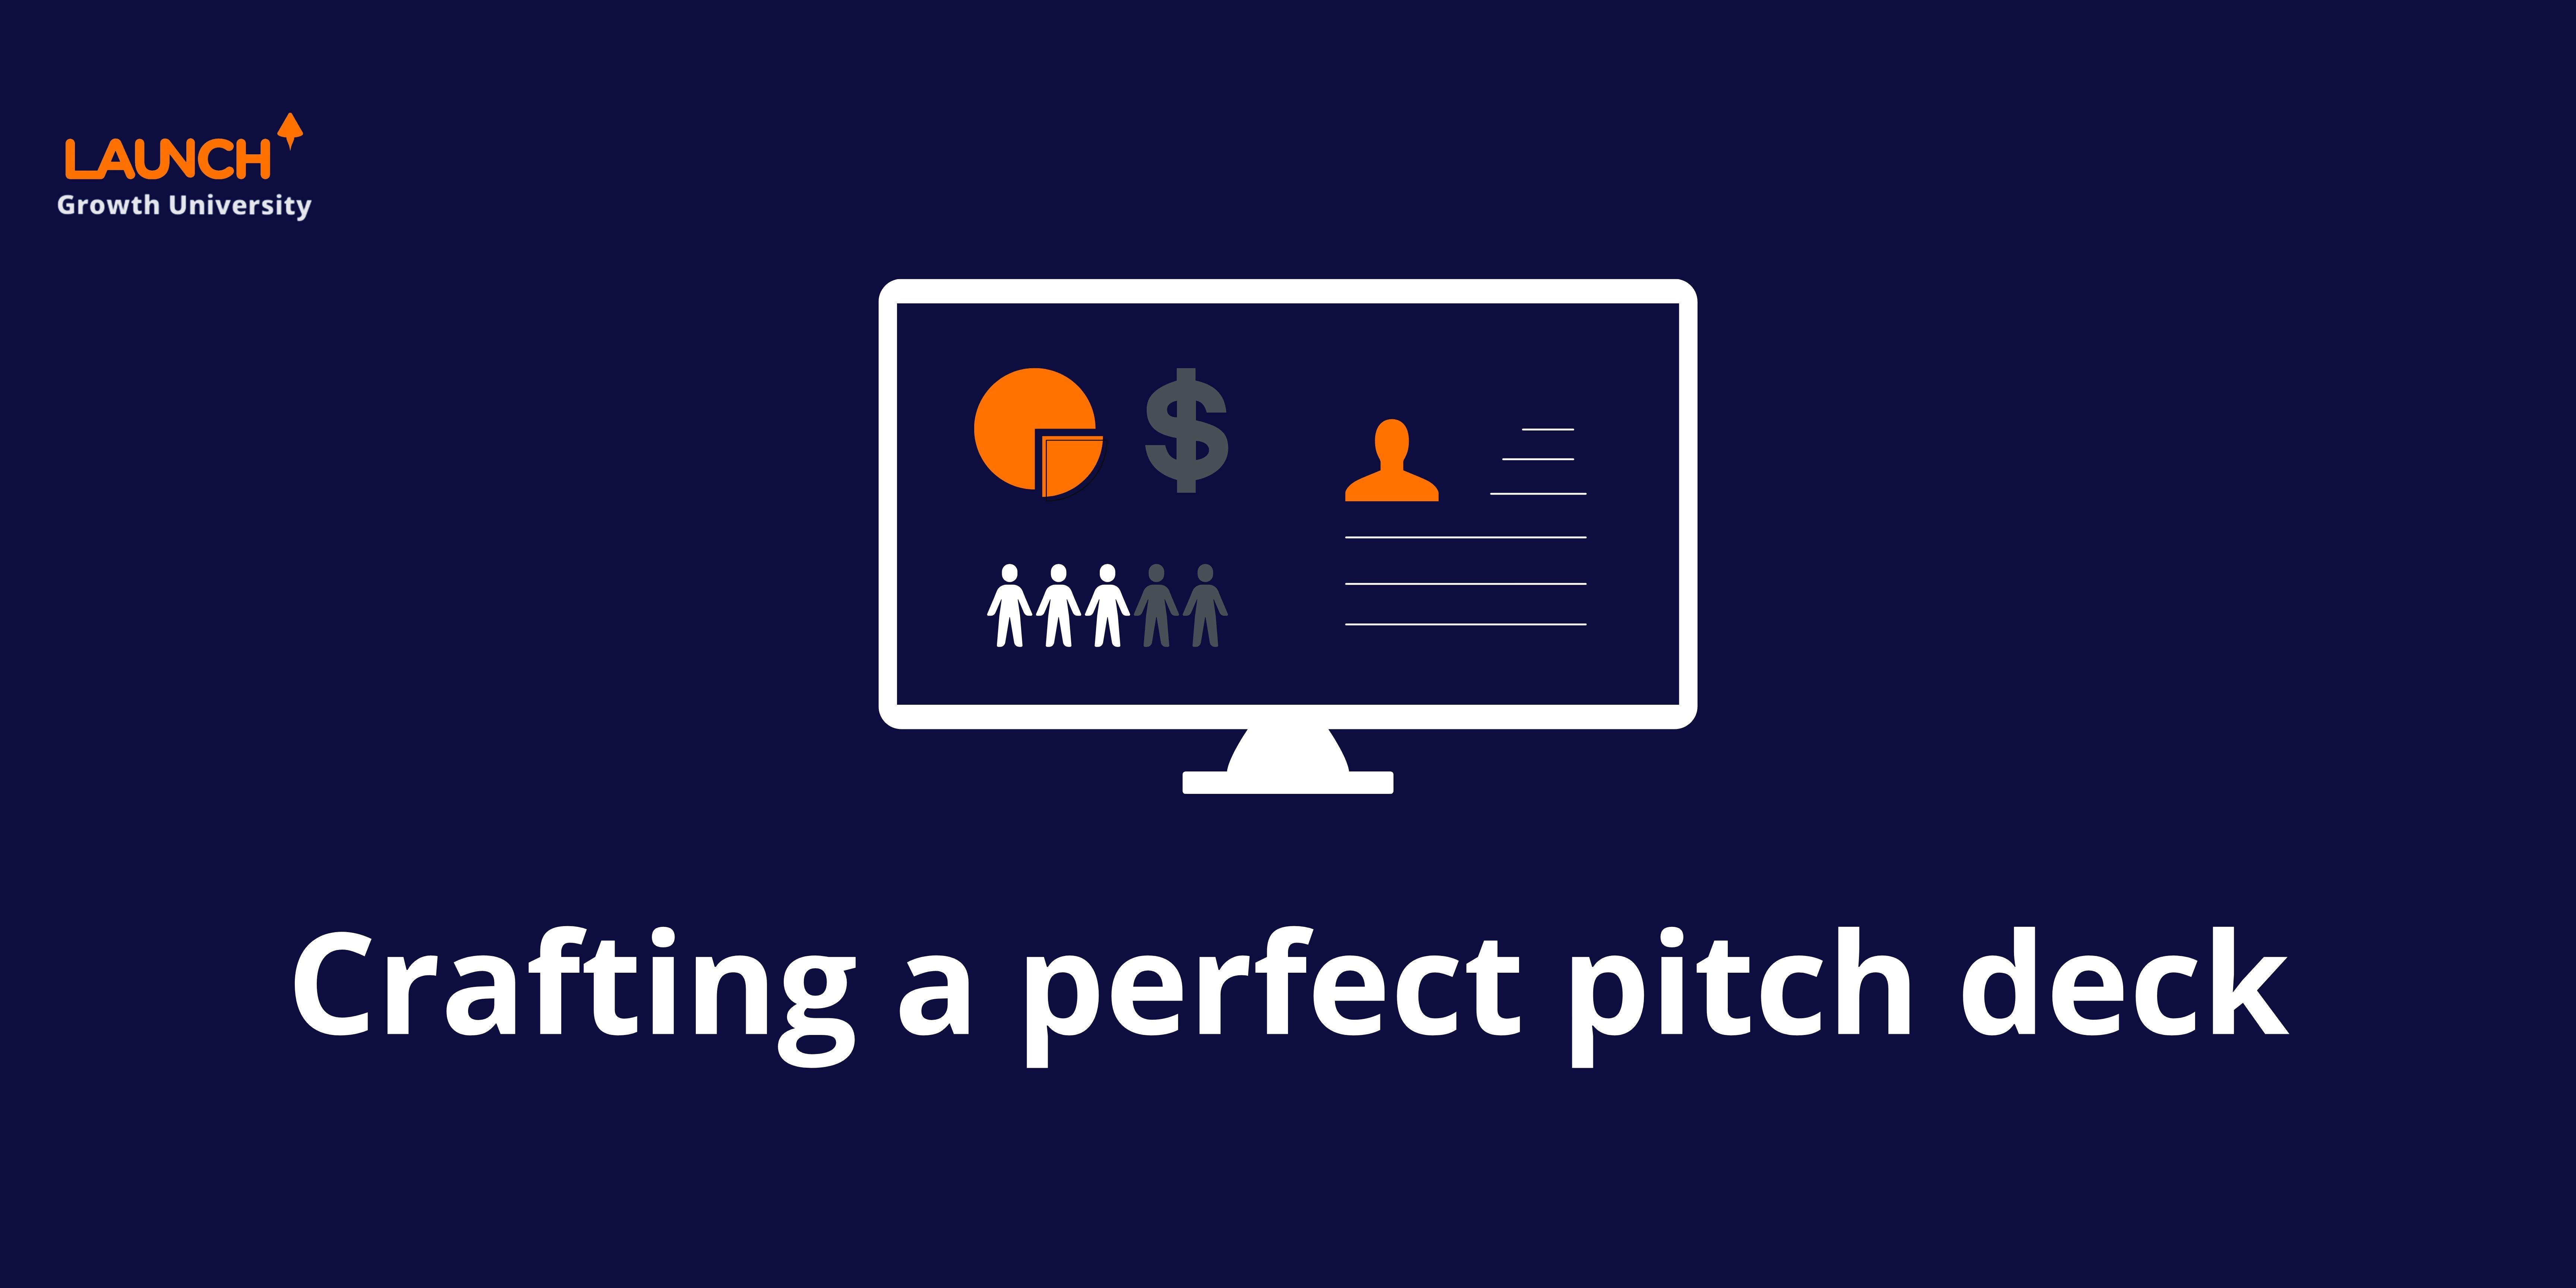 Crafting a perfect pitch deck